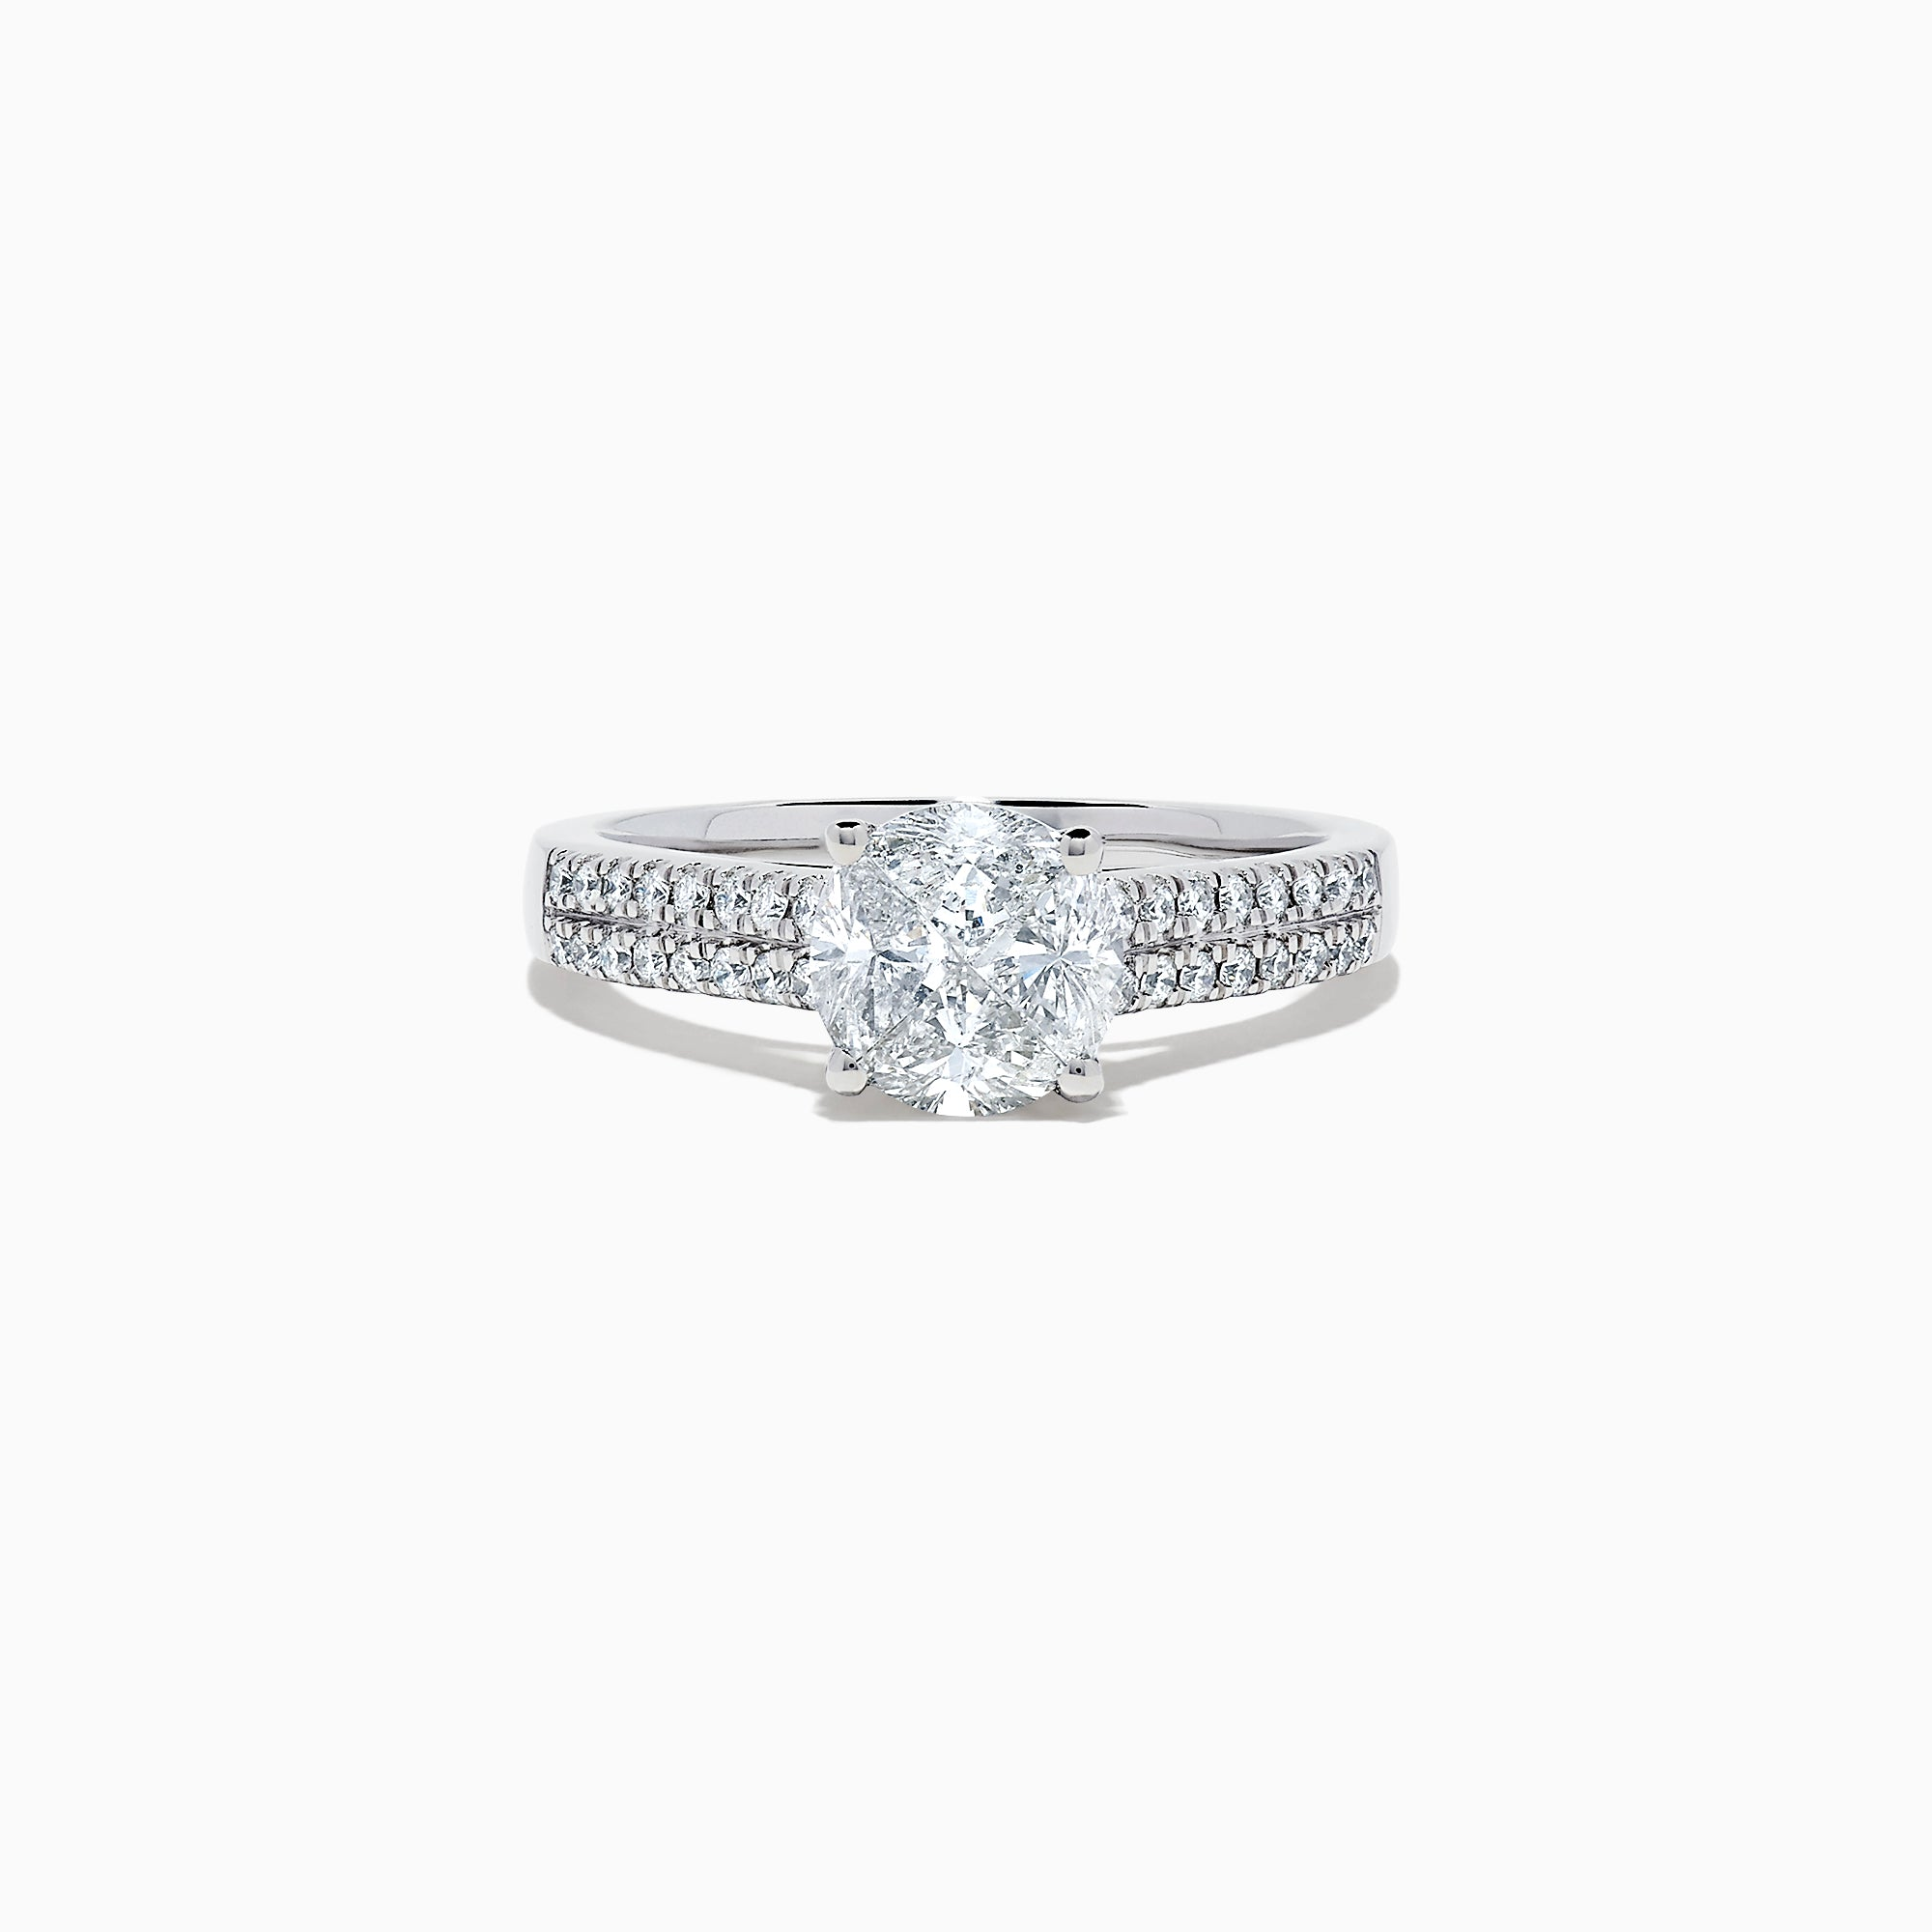 Effy Bridal 14K White Gold Diamond Ring and Matching Band Set, 1.31 TCW